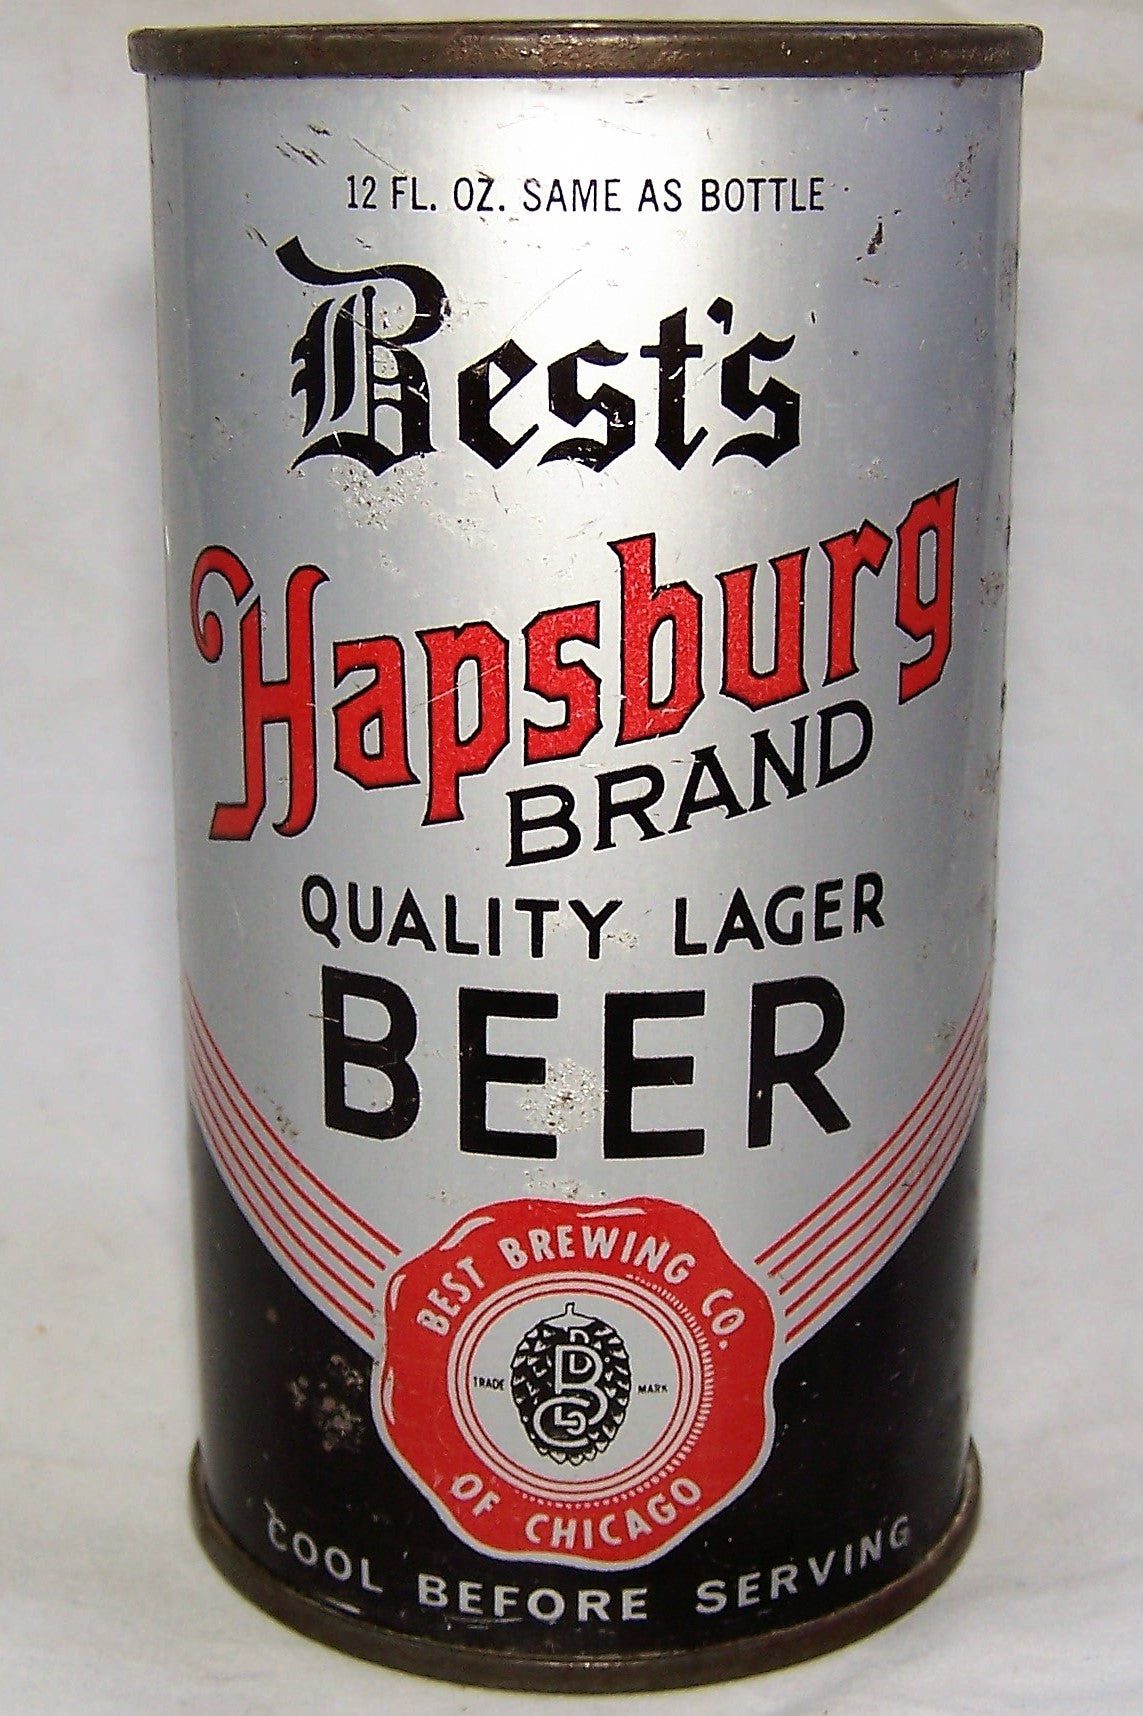 Best's Hapsburg Brand Beer, All original, barn find, Grade 2+